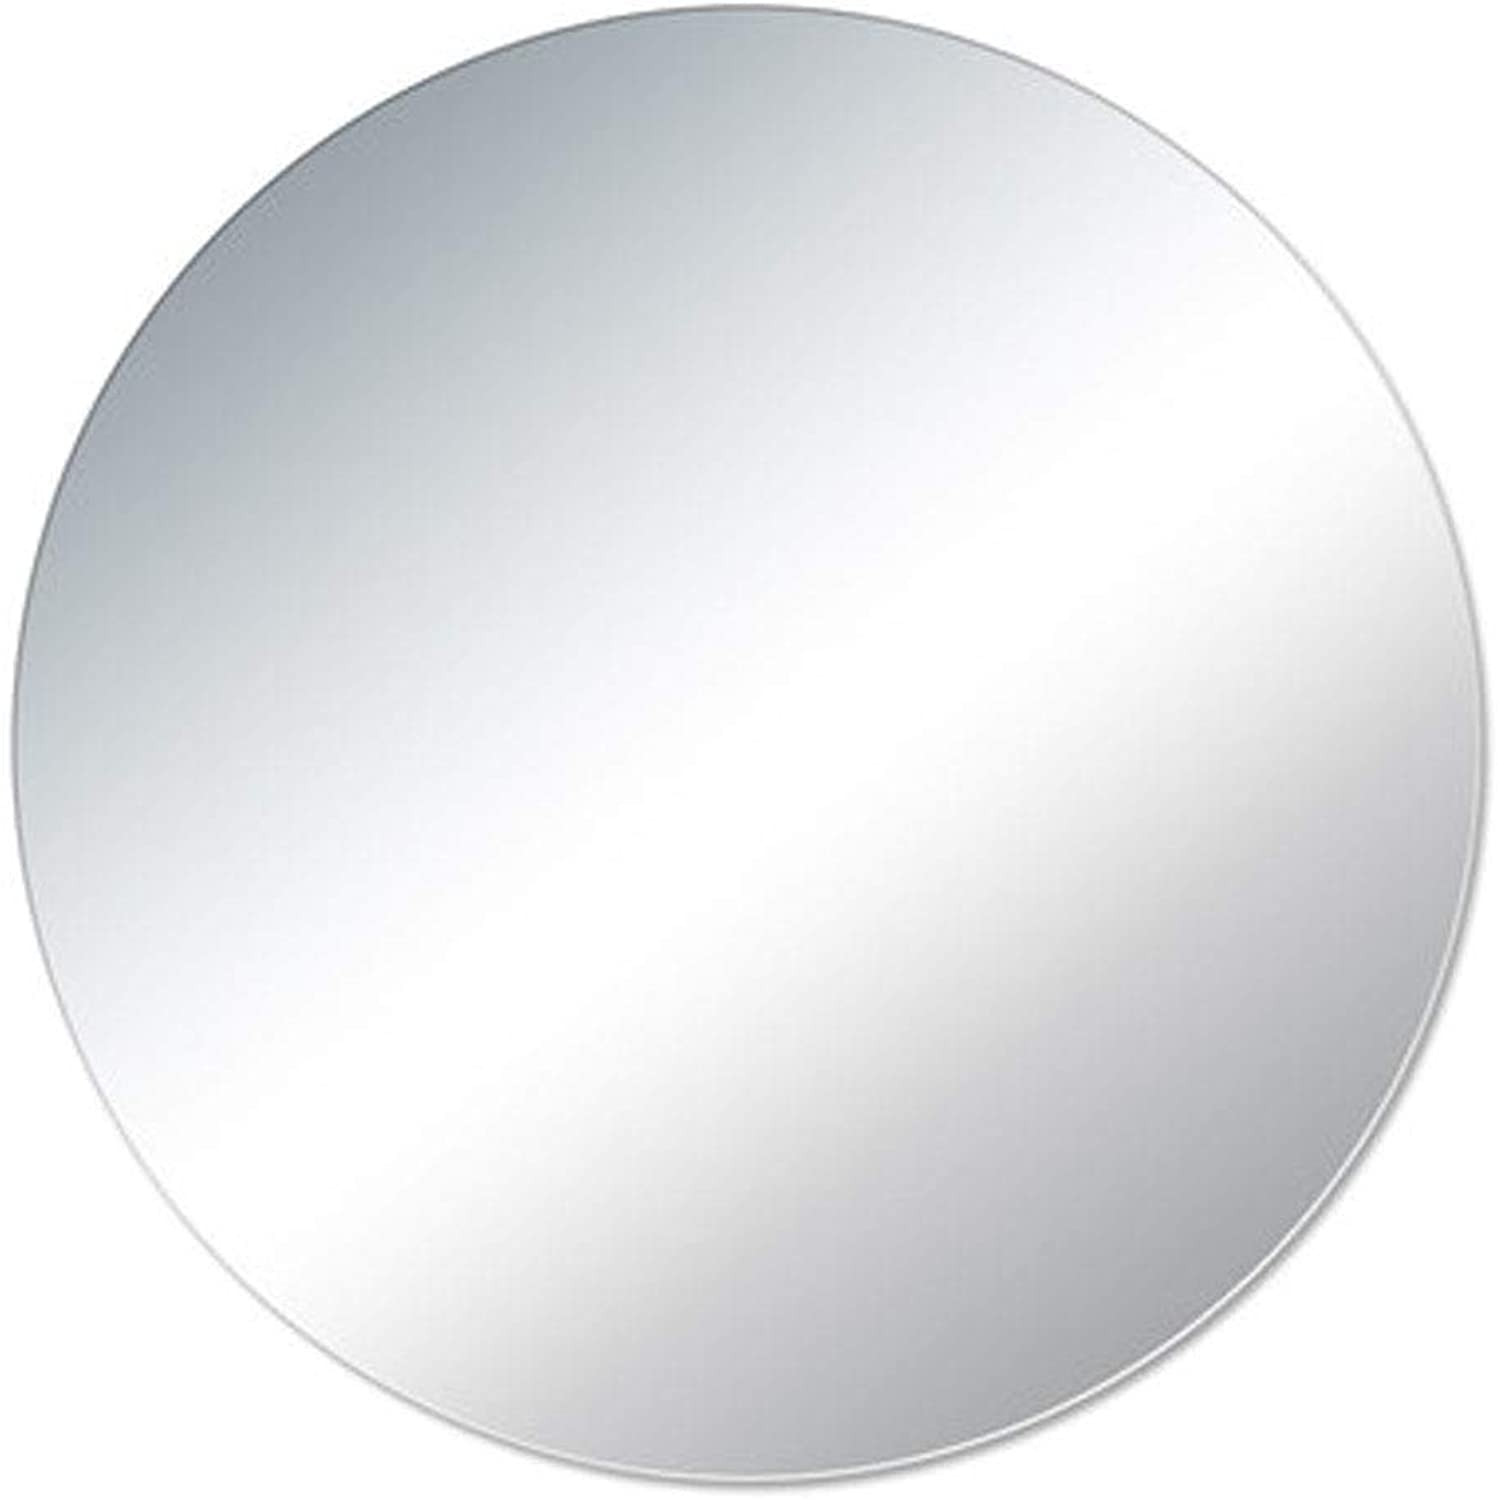 Round Frameless Wall Mirror Explosion-Proof Round Bathroom Mirror Wall Mounted Bathroom Mirror for Living Room, Bedroom